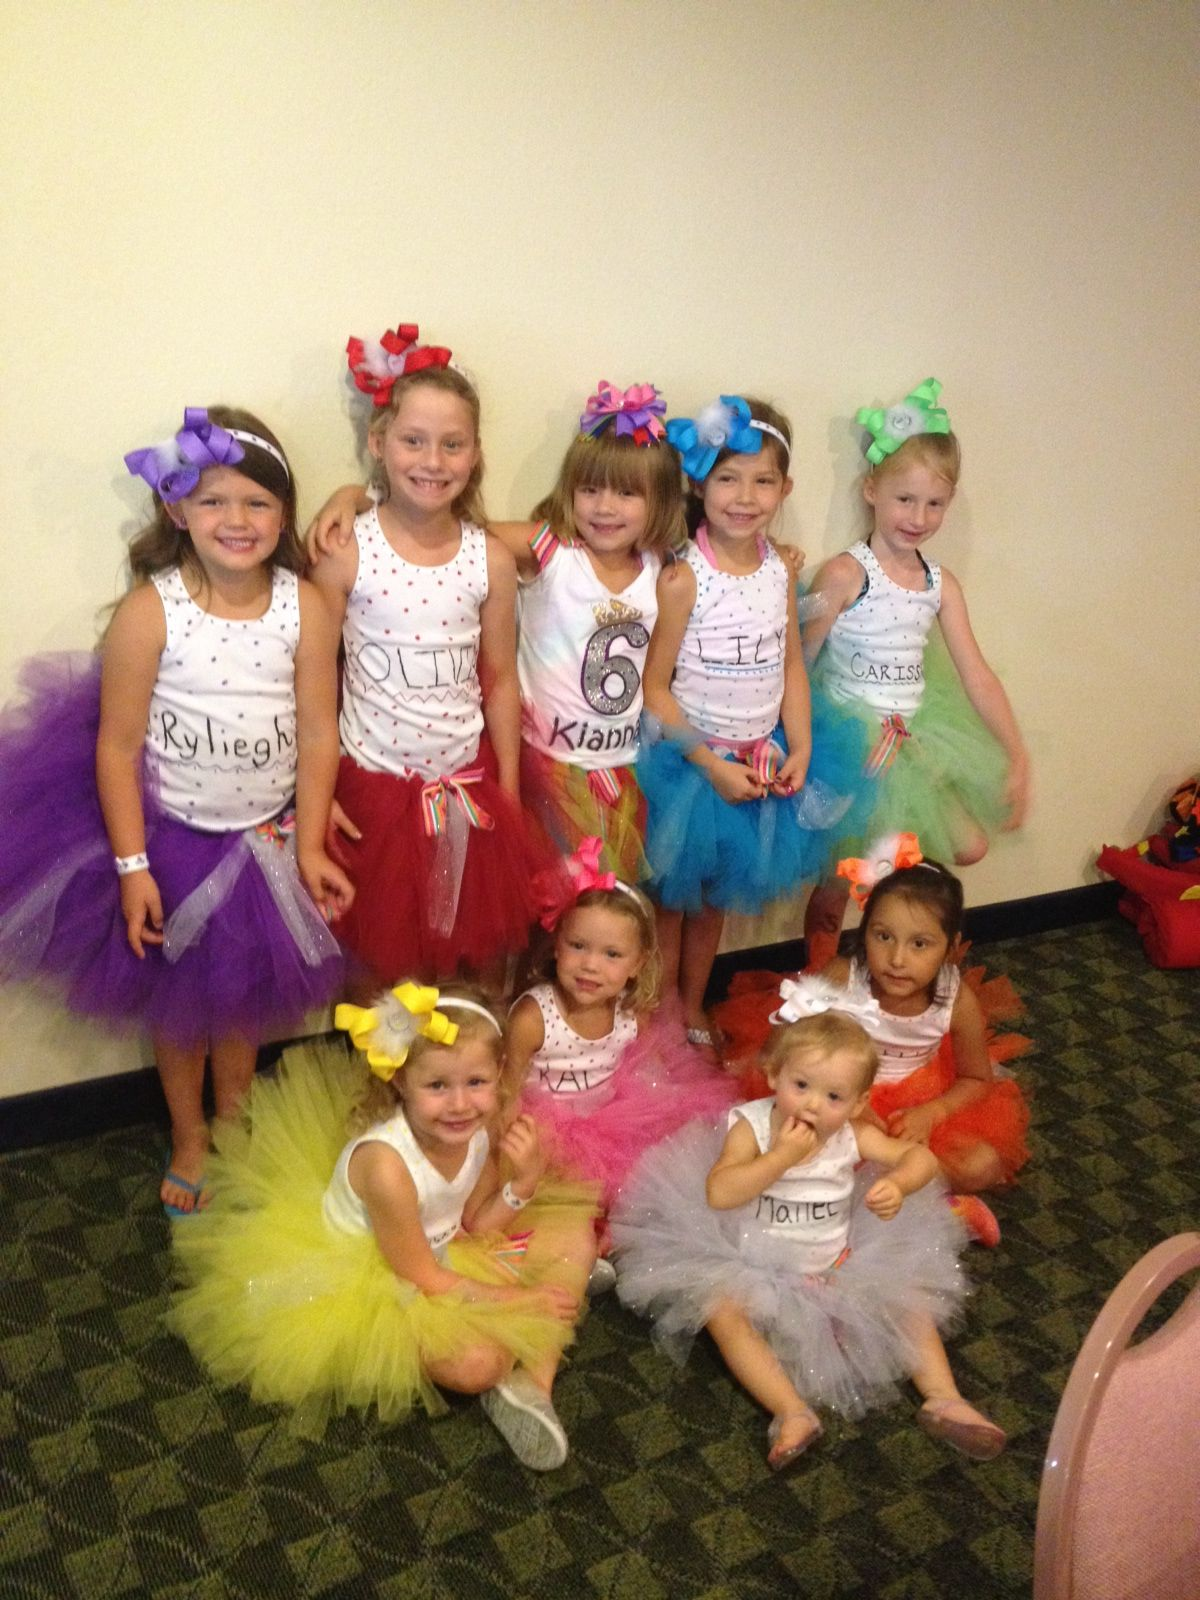 Tutu 6th birthday party idea all girls feel special and the